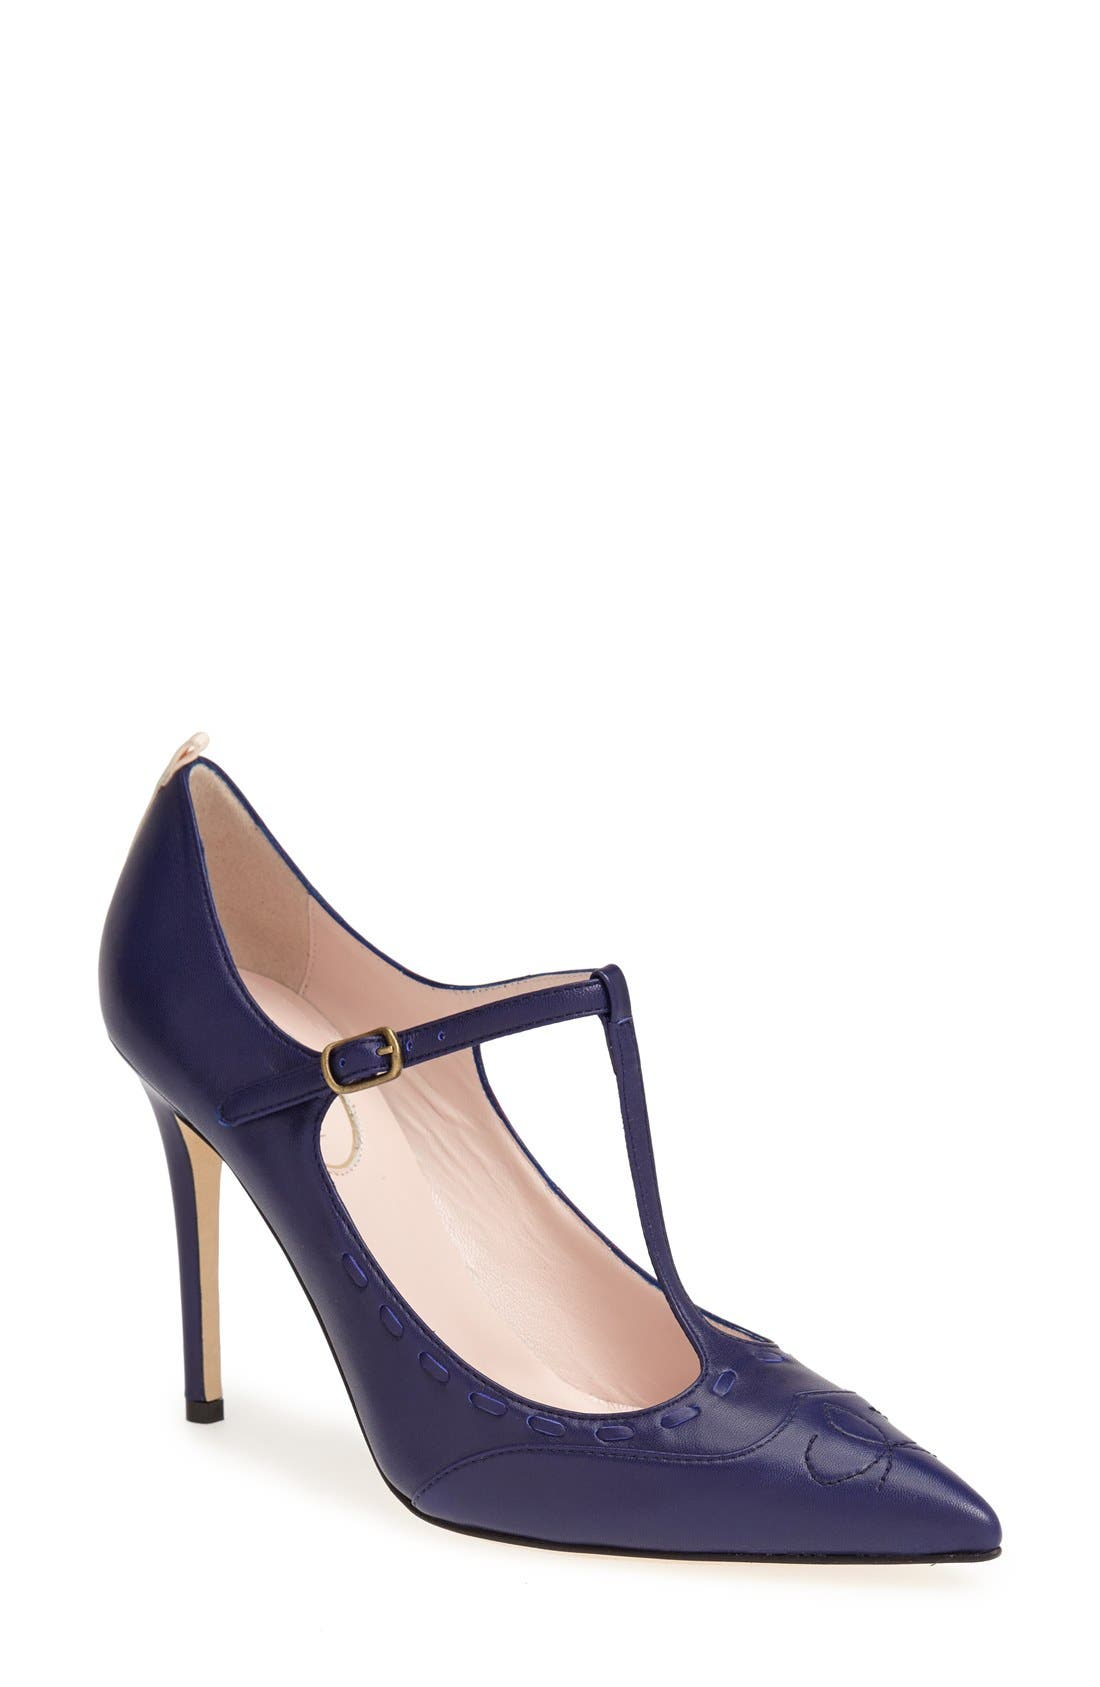 Main Image - SJP 'Blythe' Leather T-Strap Mary Jane Pump (Women)